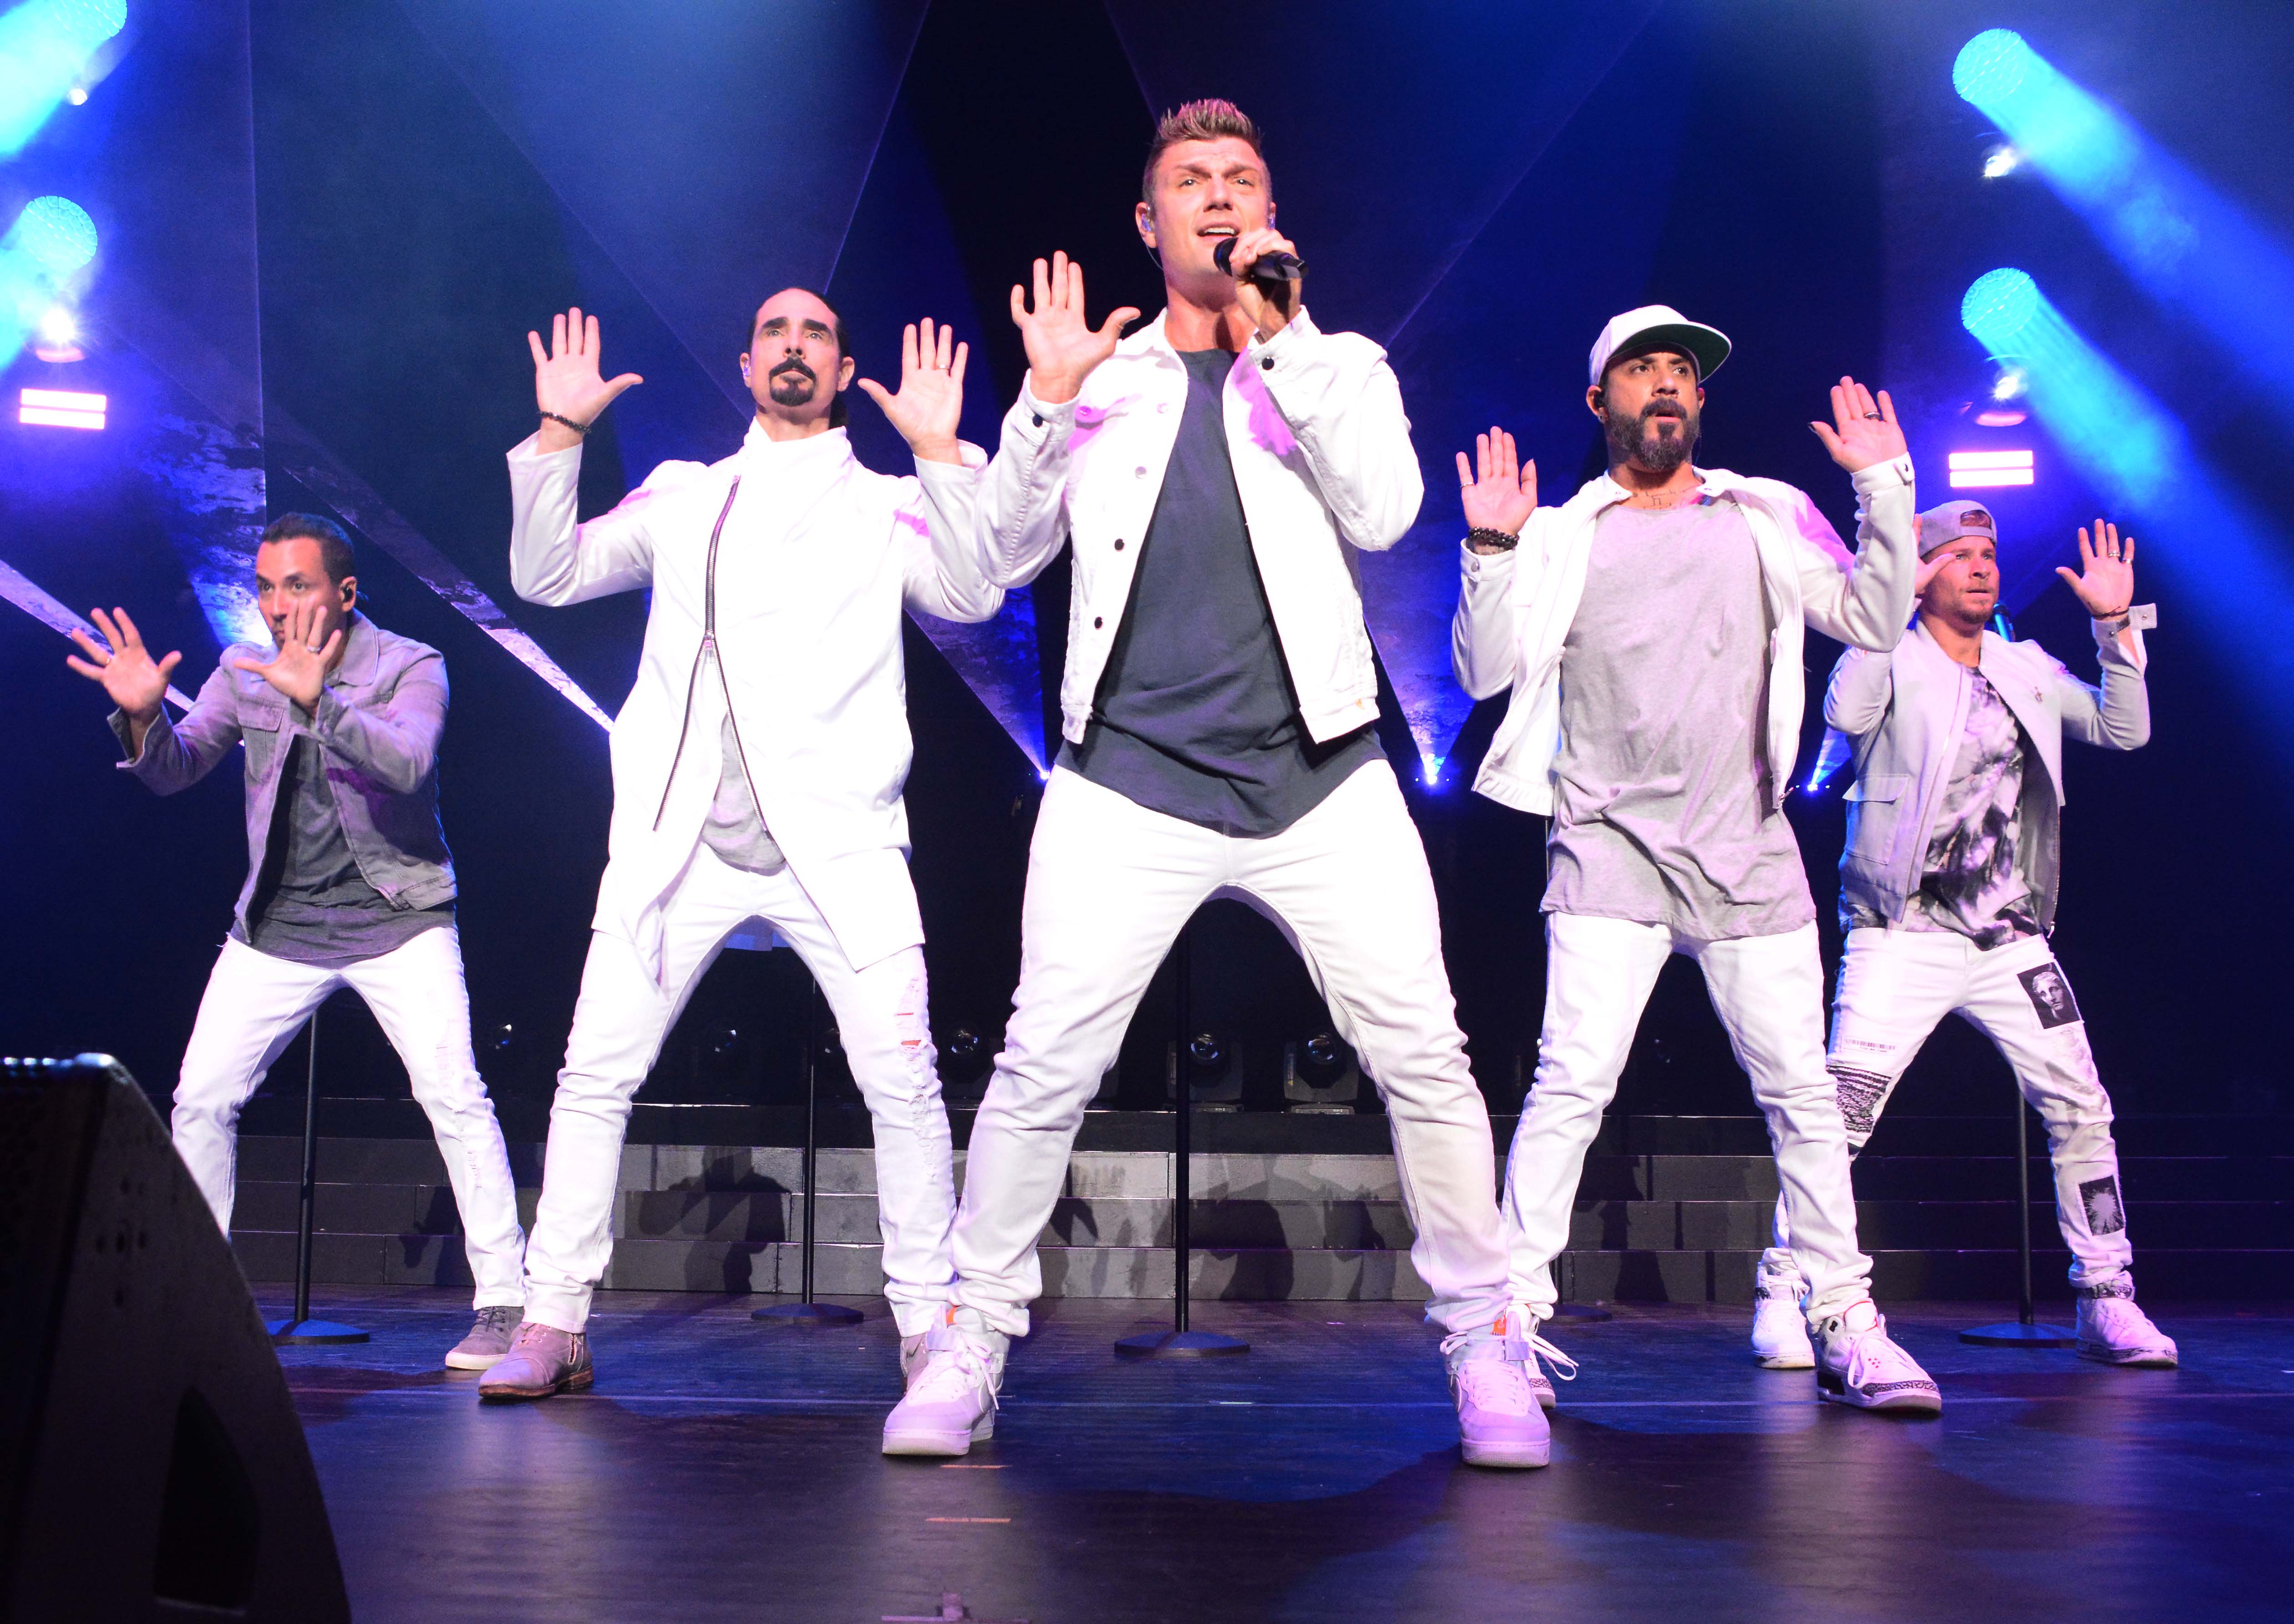 Backstreet Boys perform at The KTU Concert in Jones Beach NYFeaturing: Backstreet BoysWhere: Wantagh City, New York, United StatesWhen: 16 Jun 2018Credit: Patricia Schlein/WENN.com